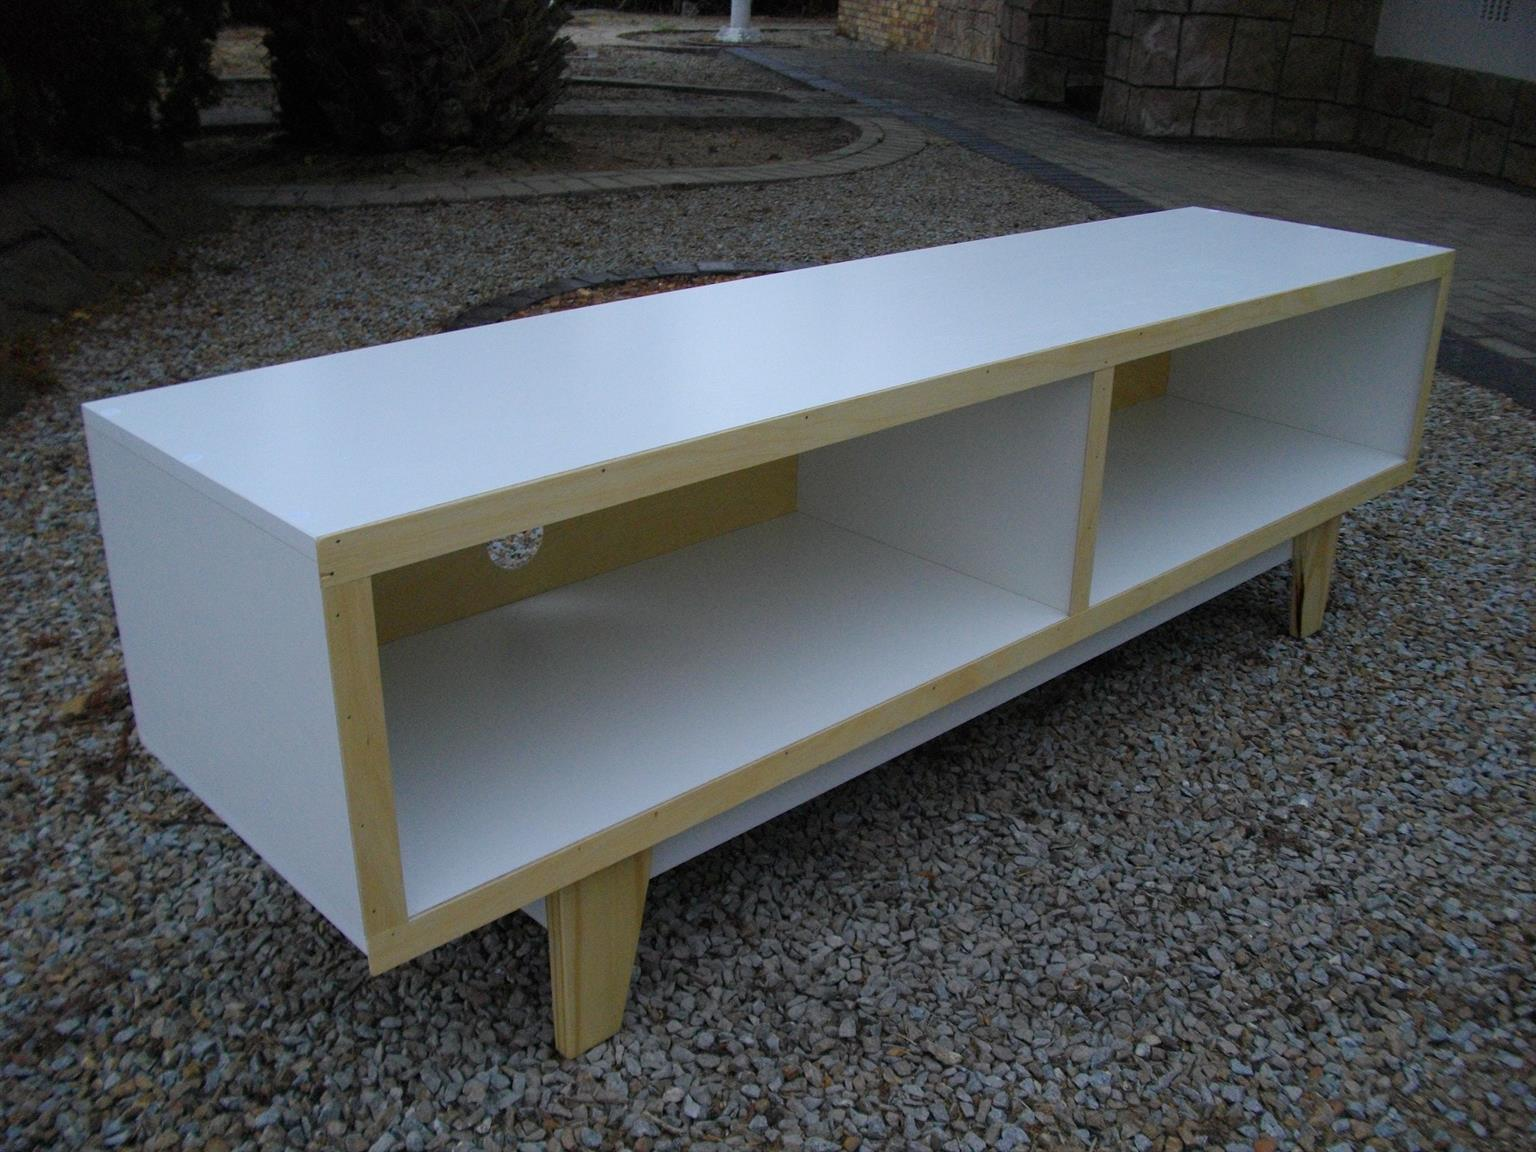 Special Offer for this week!! Retro Melamine Alpine White Plasma Unit. Was R1500 Now Only R1200.